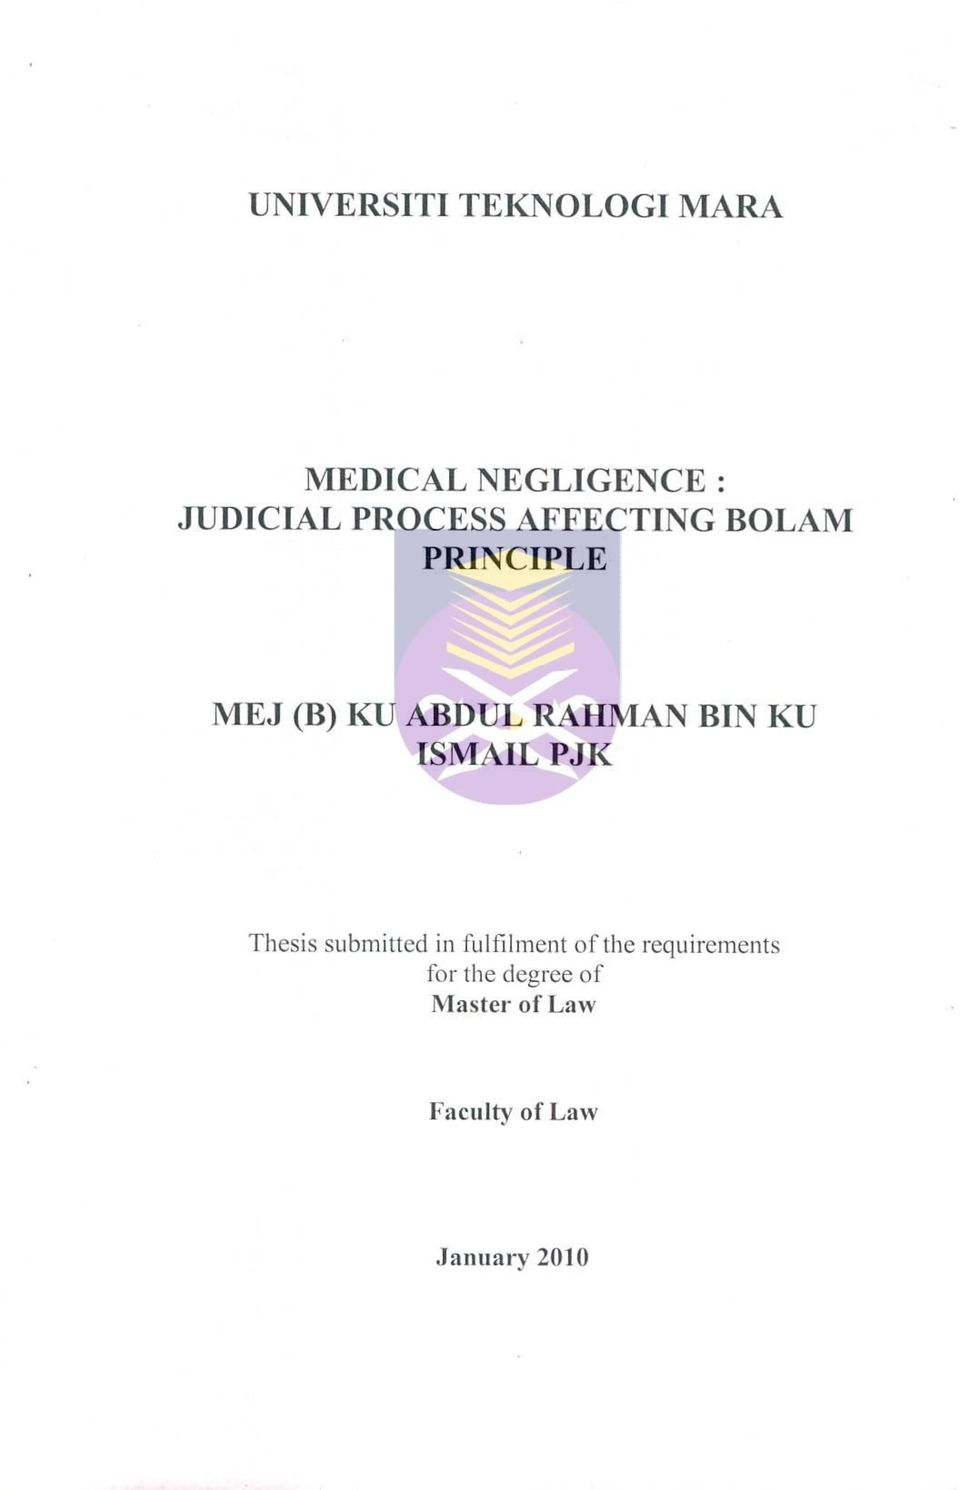 BIN KU ISMAIL PJK Thesis submitted in fulfilment of the